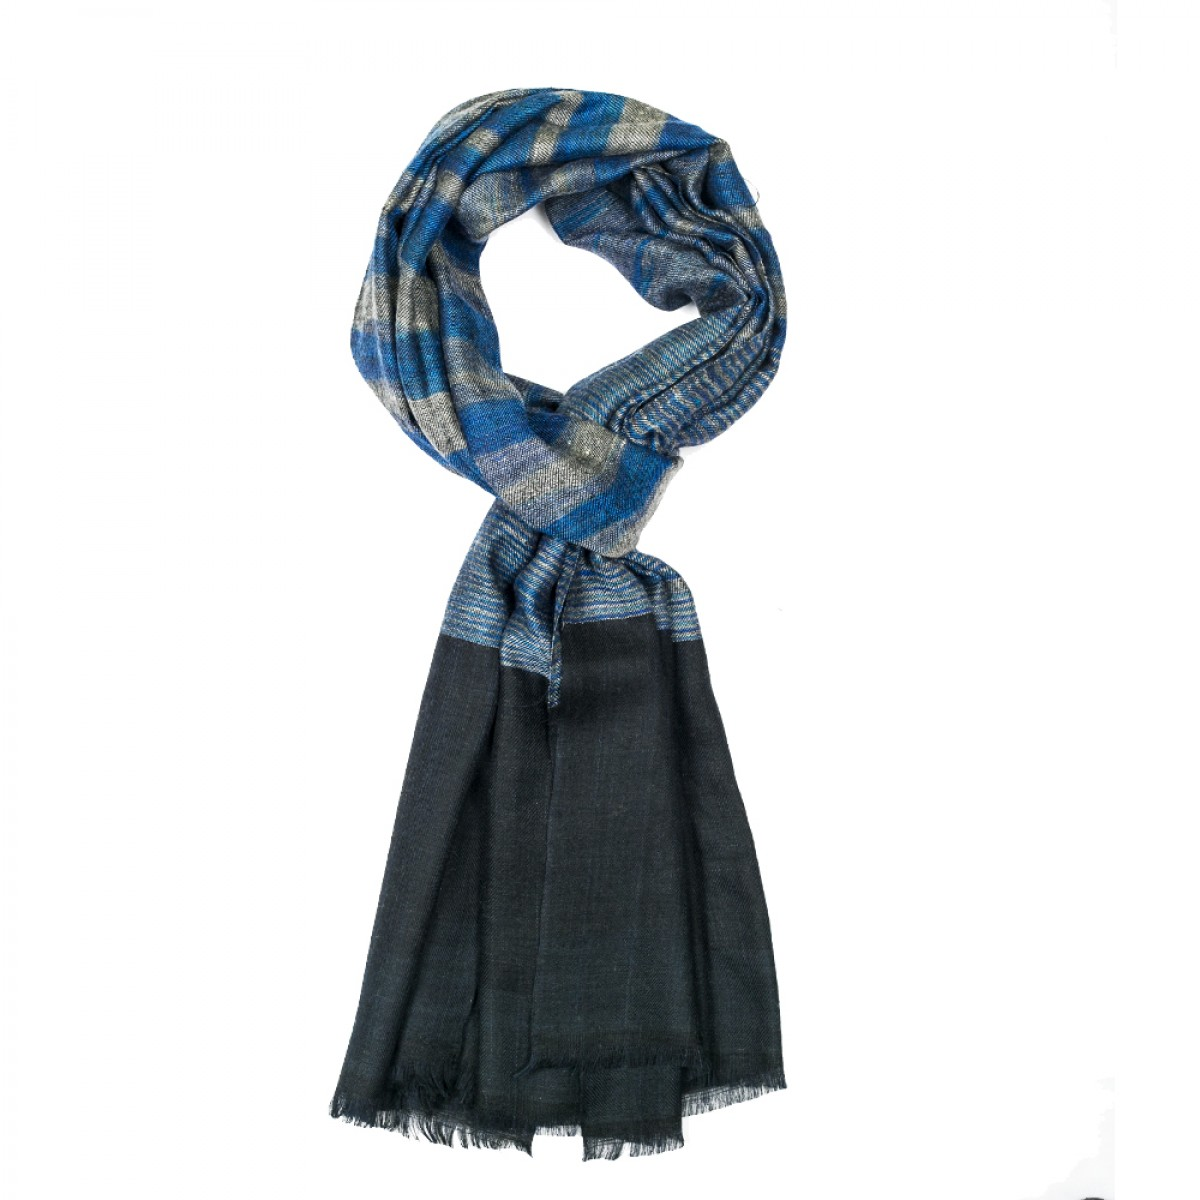 Unisex Ikat Cashmere Pashmina Scarf - Black and blue